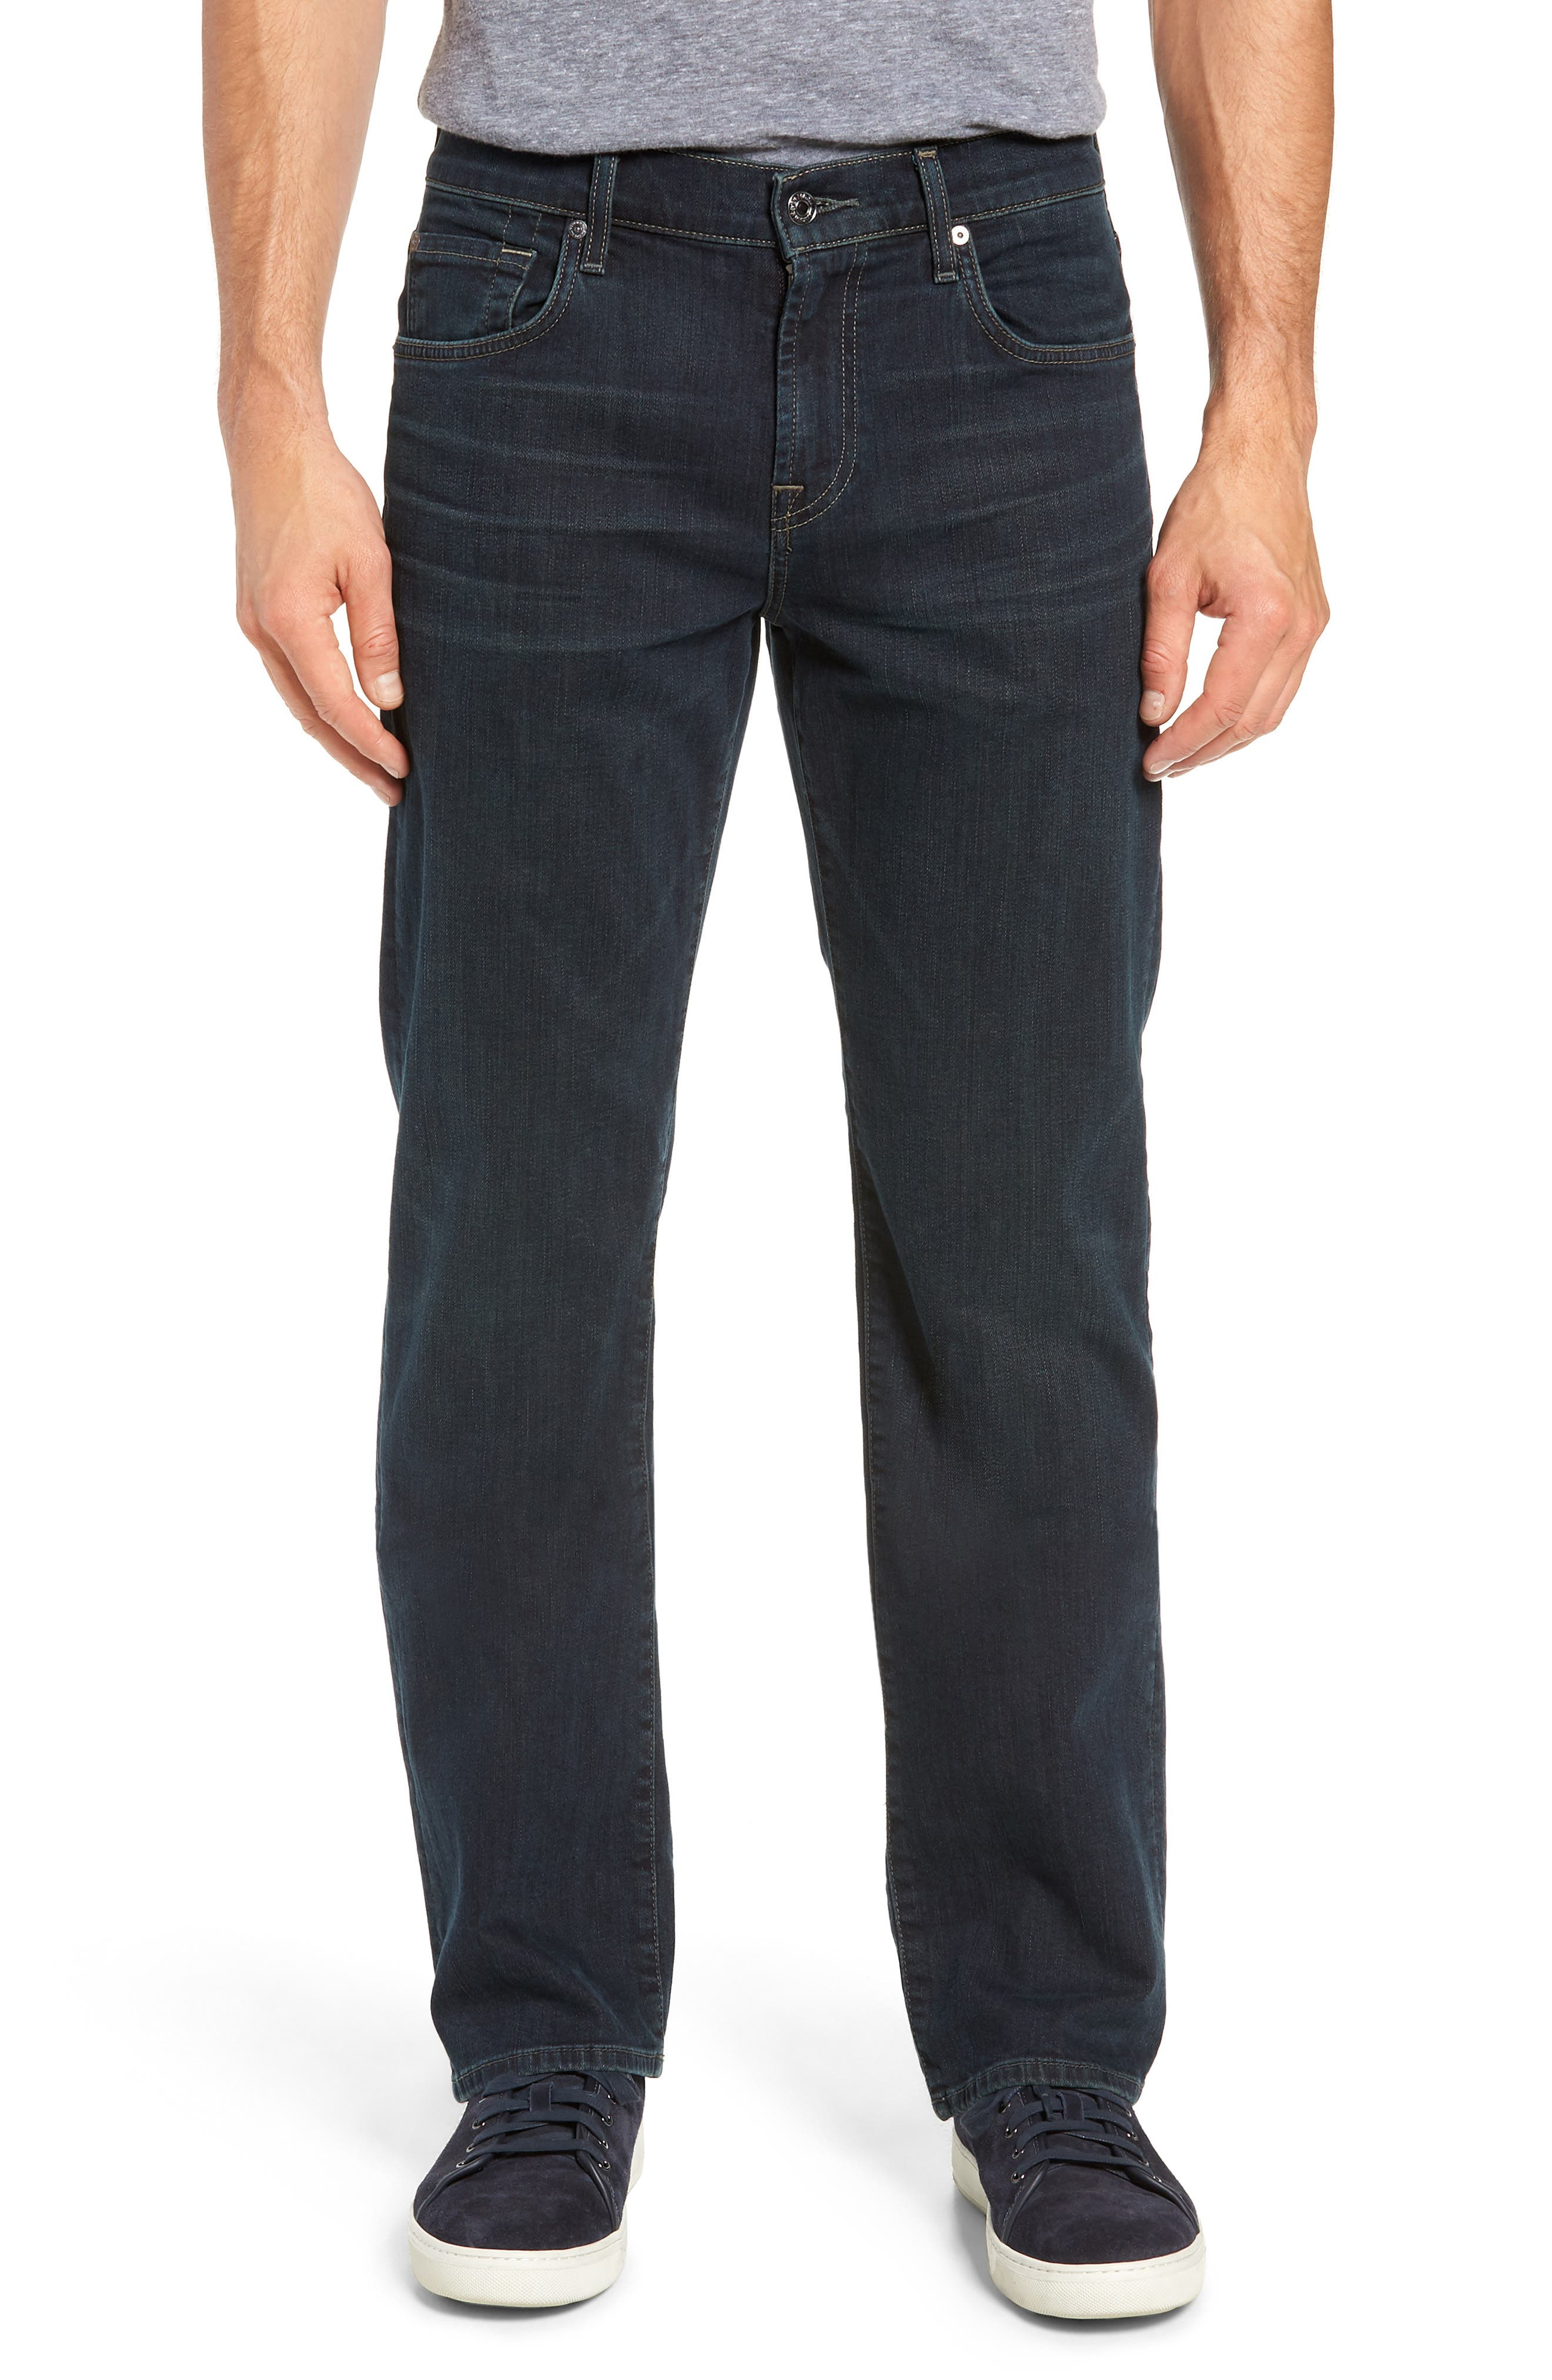 Austyn Relaxed Fit Jeans,                             Main thumbnail 1, color,                             CONTRA